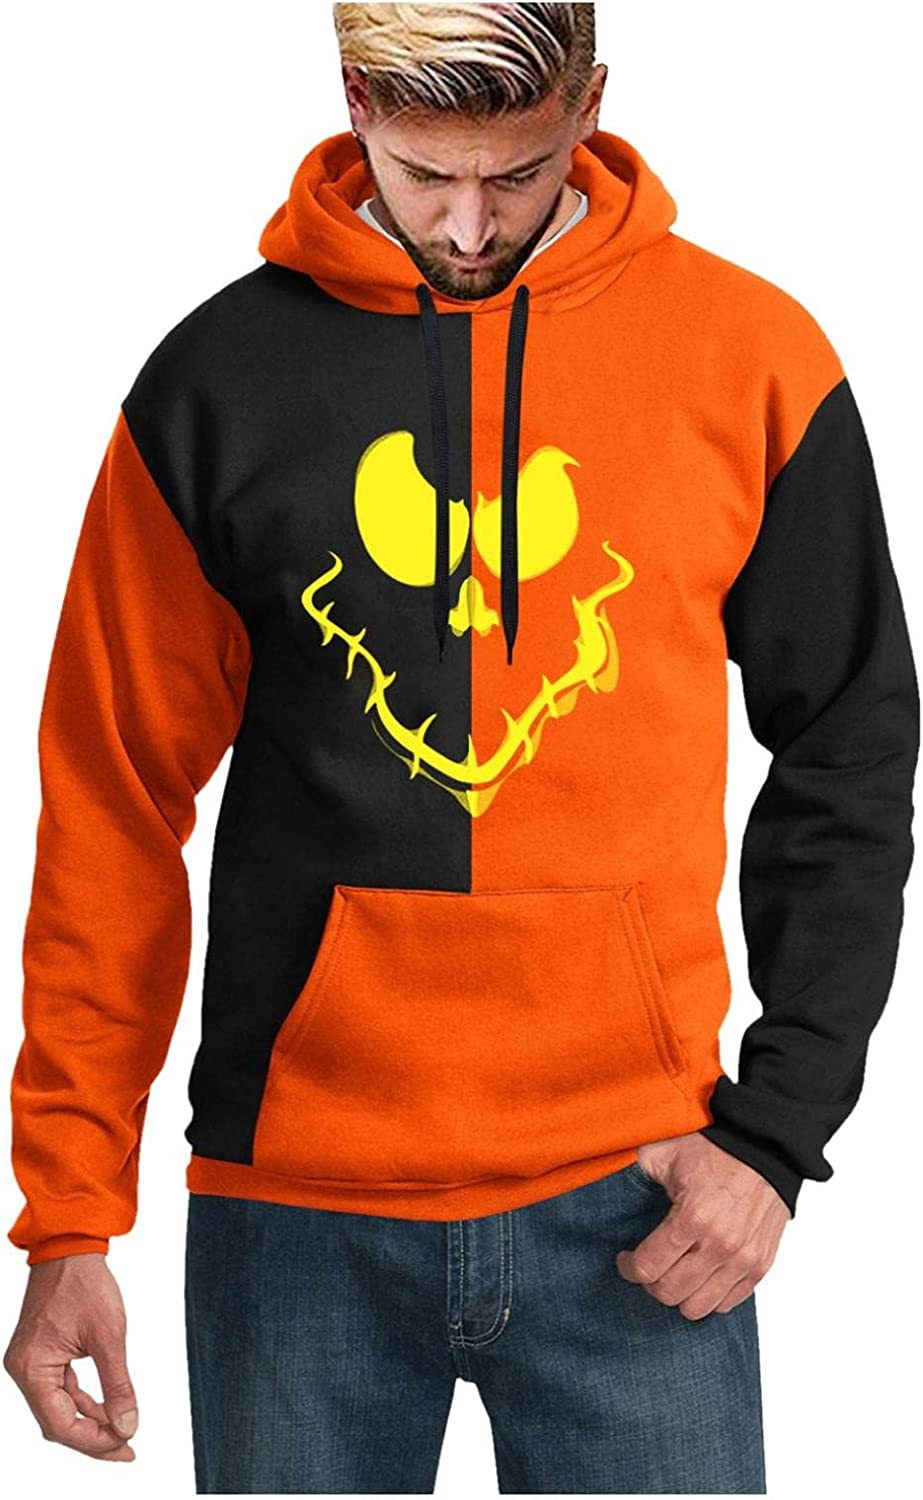 Men's Hoodies Halloween 3D Prints Sweatshirt Graphic Funny Long Sleeve Pullover Tops Blouse with Pocket